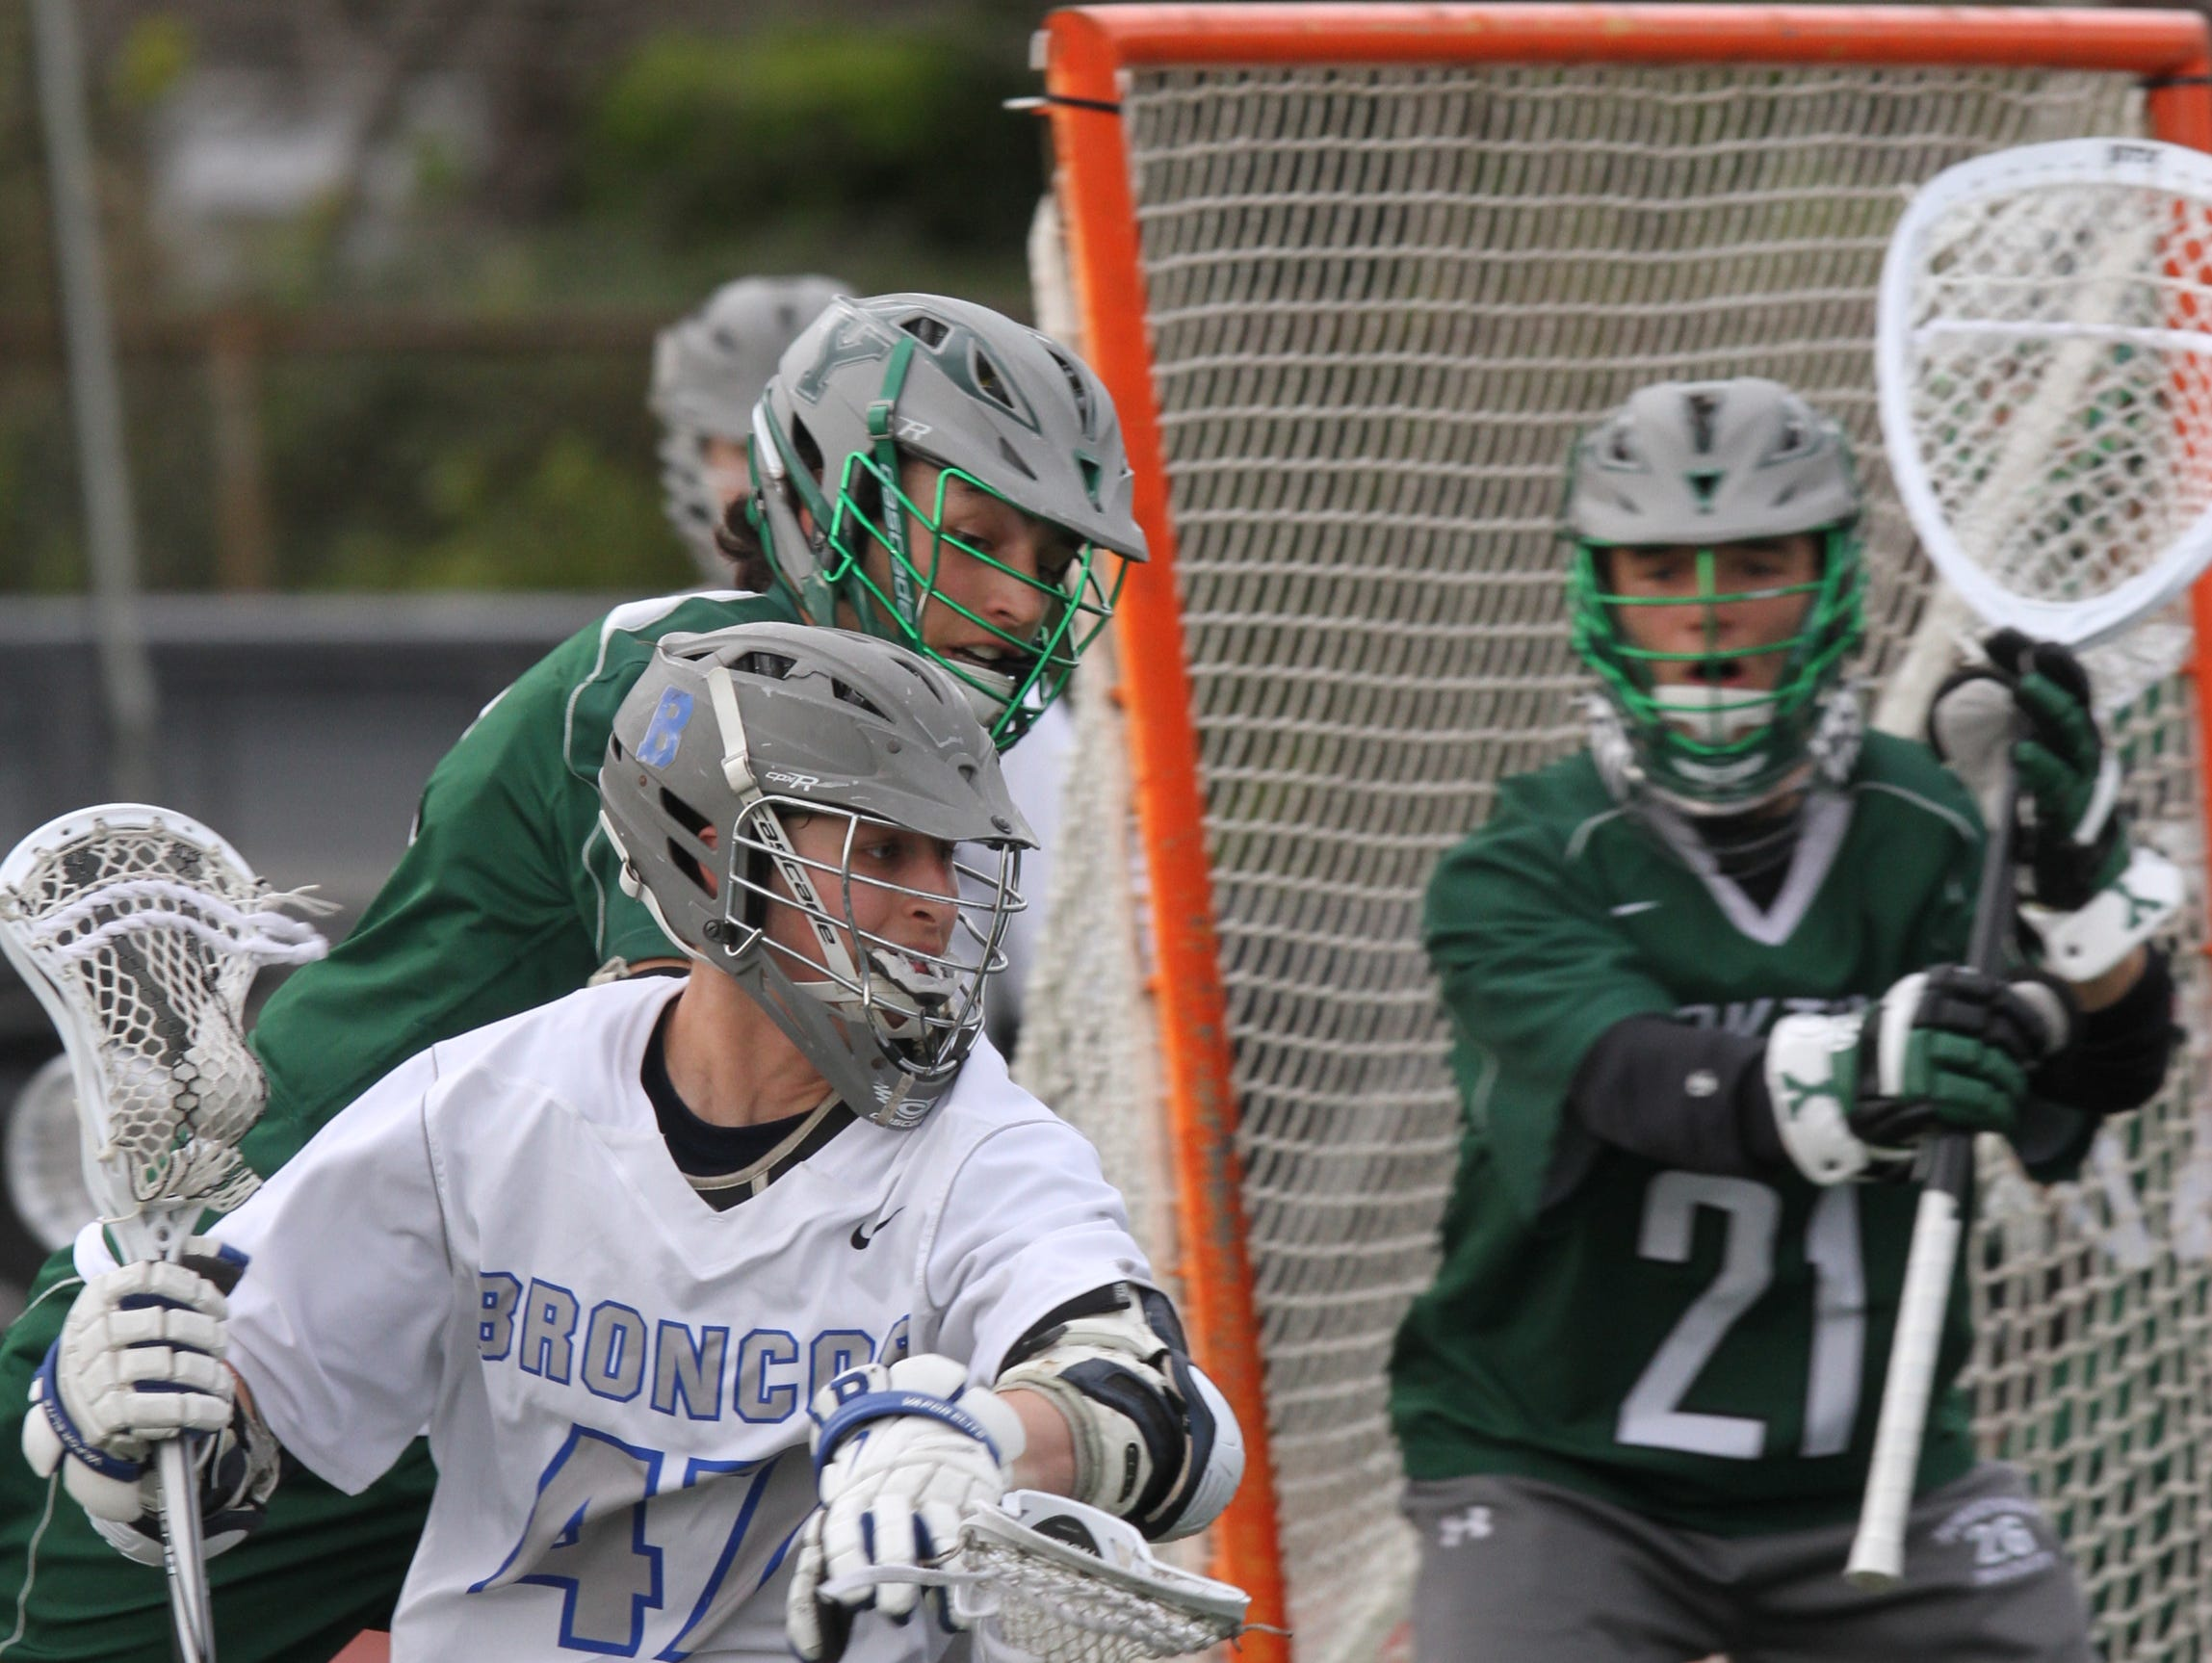 Yorktown defeats Bronxville 9-5 during boys lacrosse game at Bronxville High School on April 7, 2016.